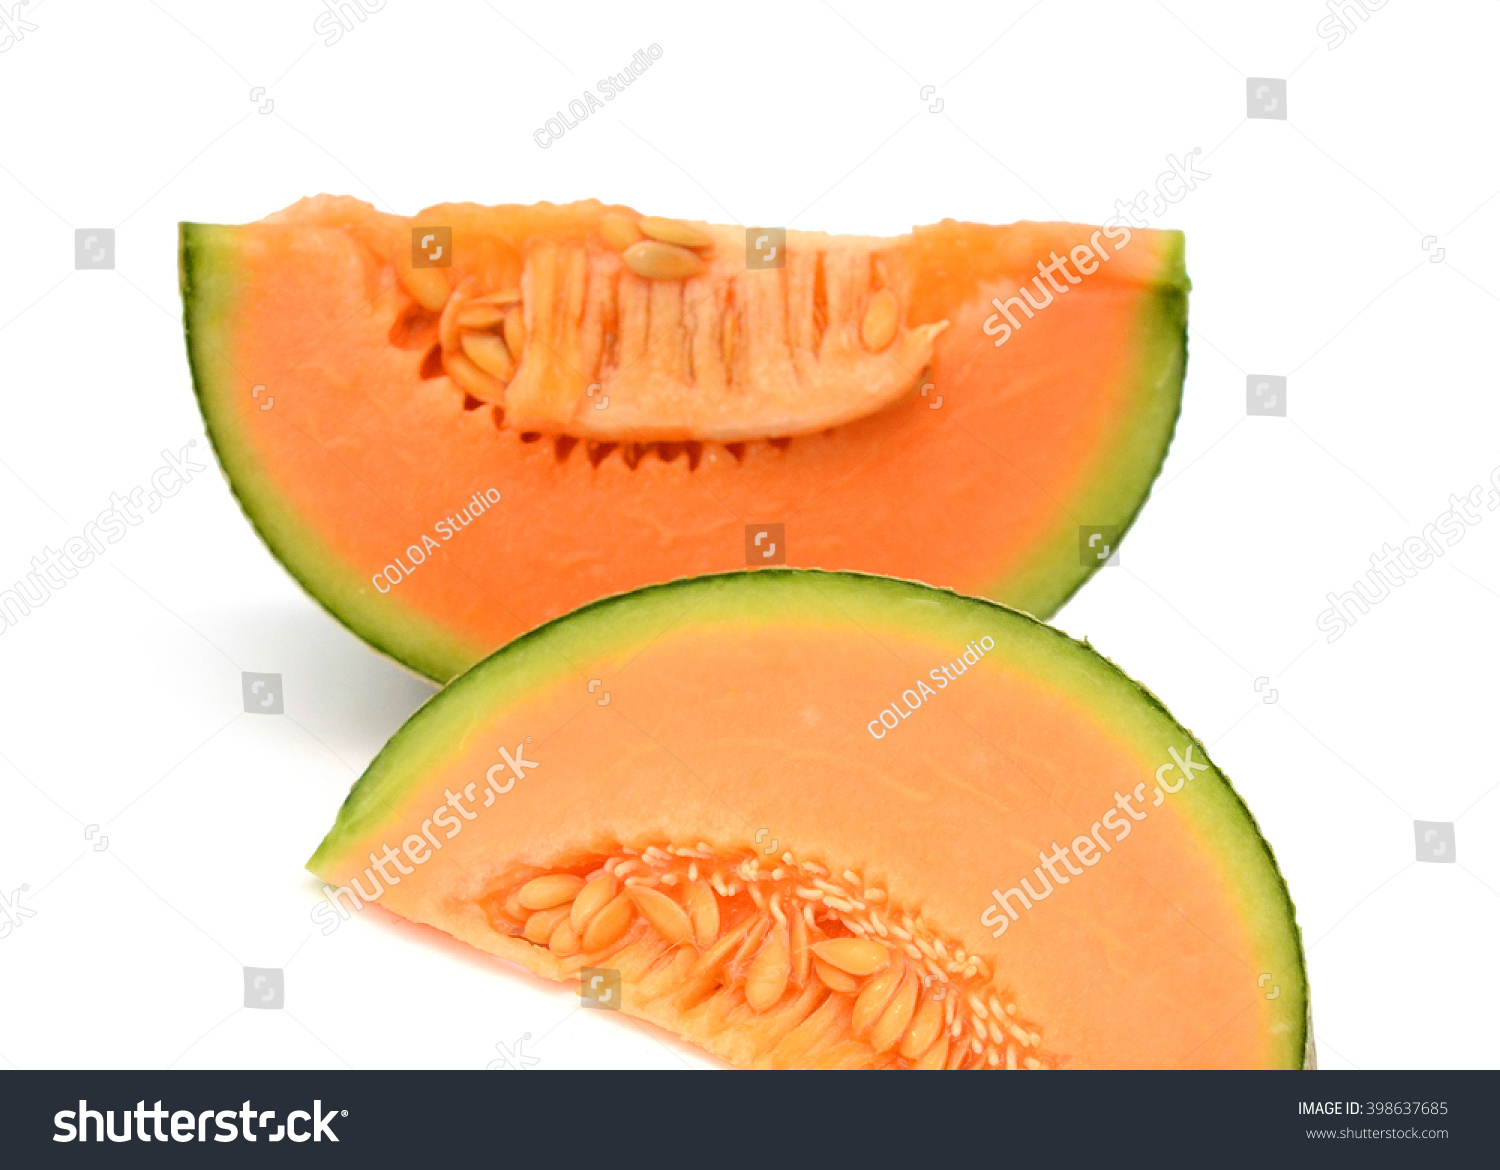 cantaloupe melone isolated on white stock photo 398637685 shutterstock. Black Bedroom Furniture Sets. Home Design Ideas